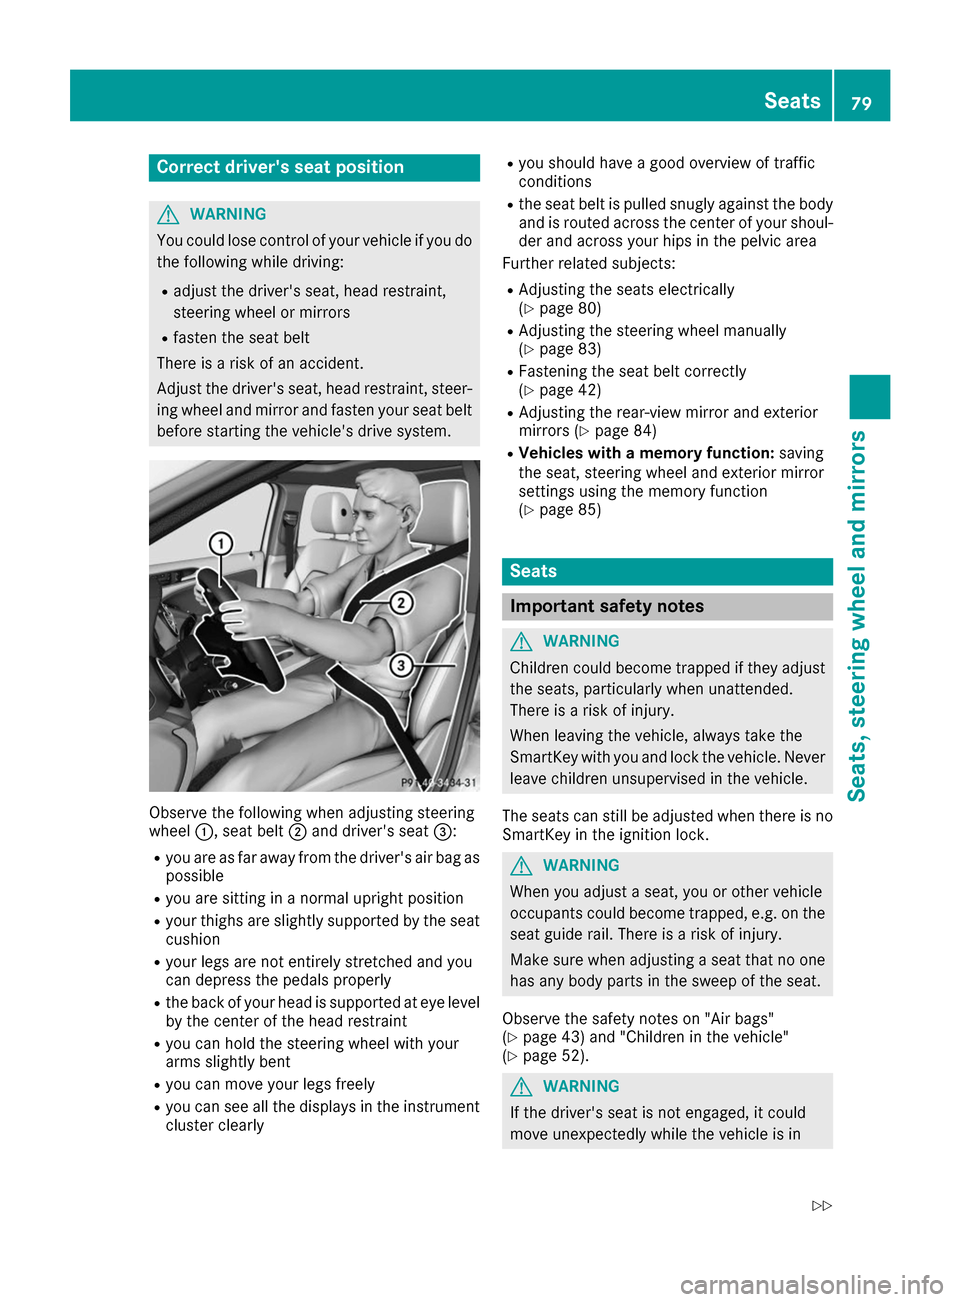 MERCEDES-BENZ B-Class 2017 W246 Owners Manual, Page 81